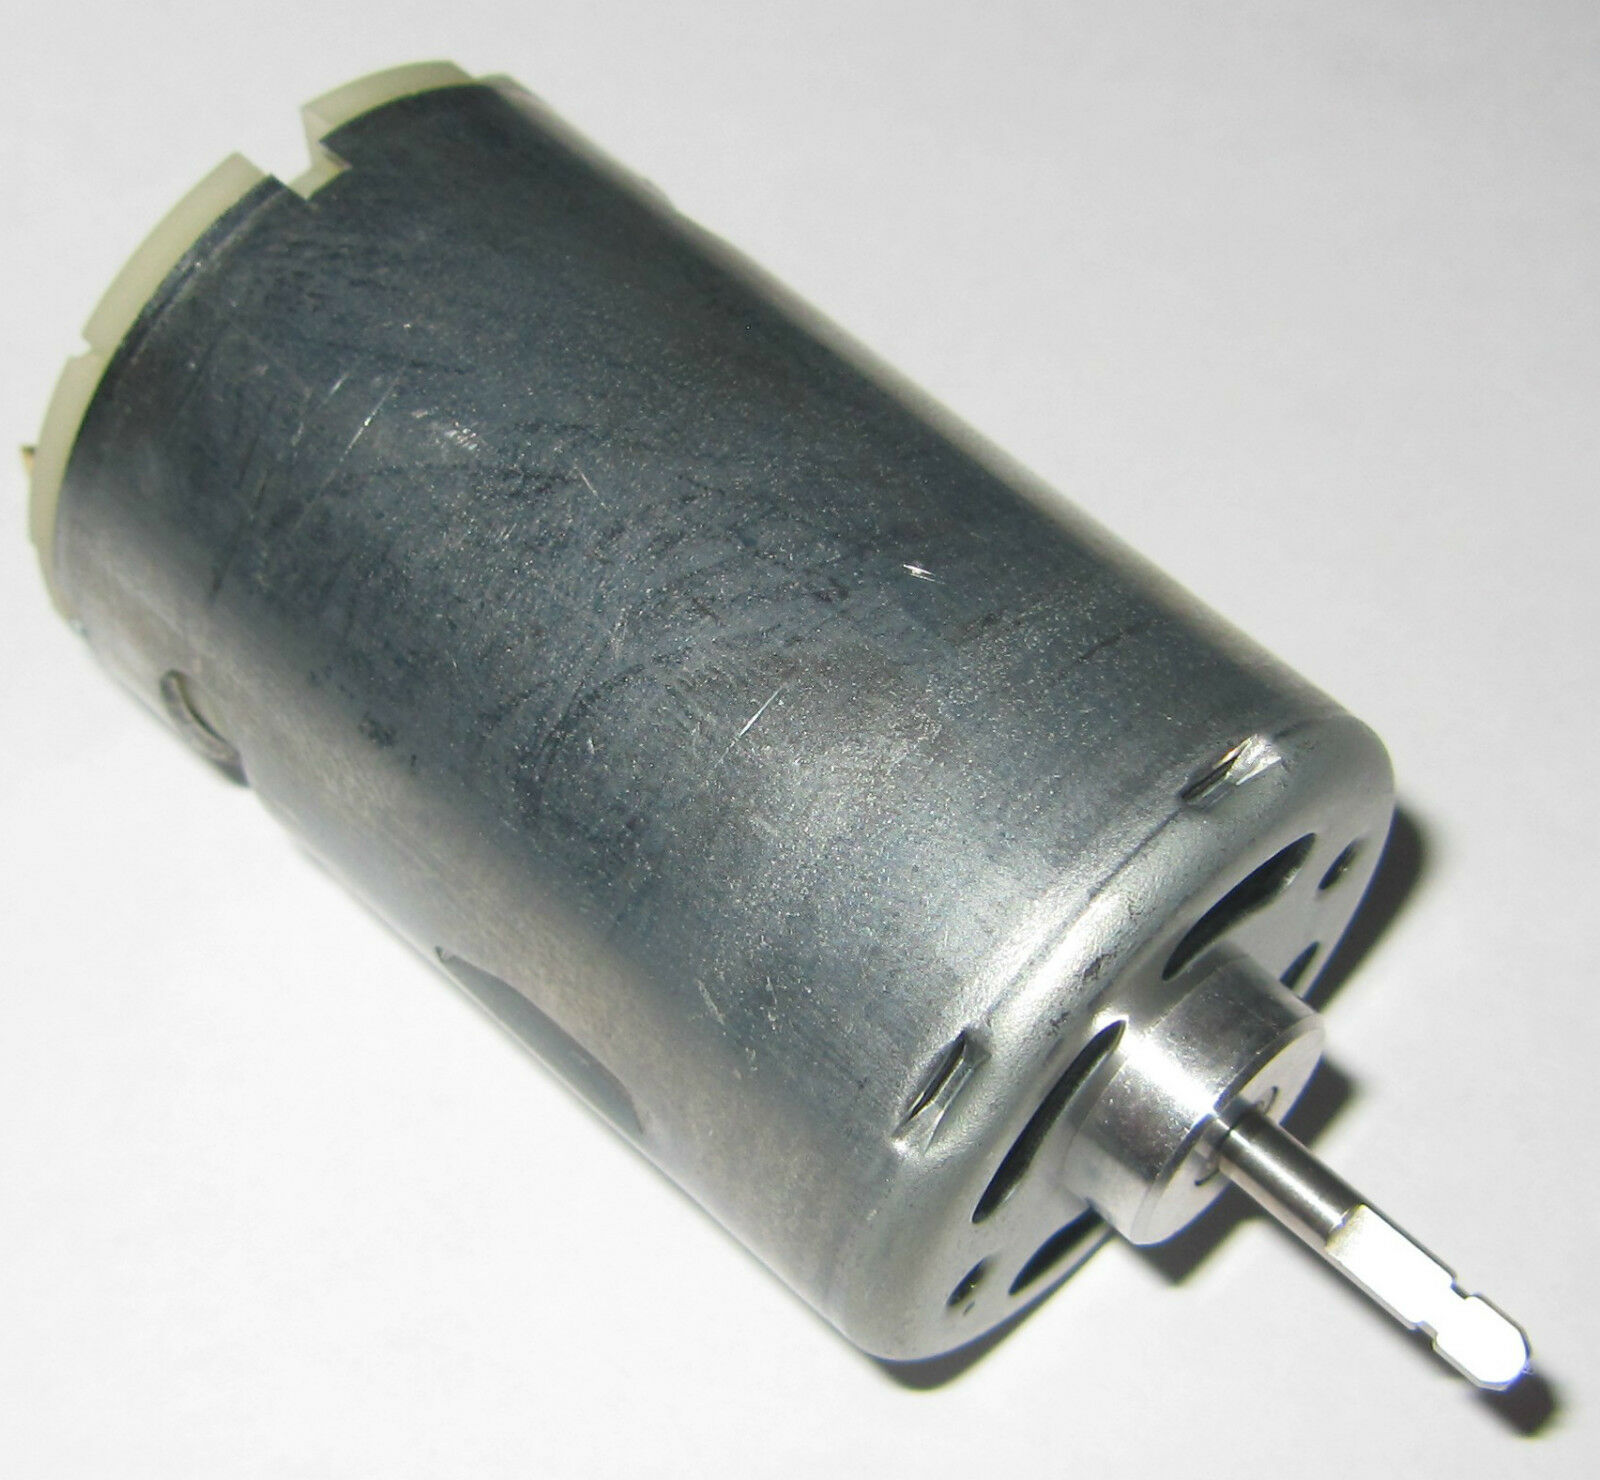 Mini dc motor generator 8600 rpm 12v hobby motor or for What is found in a generator and motor